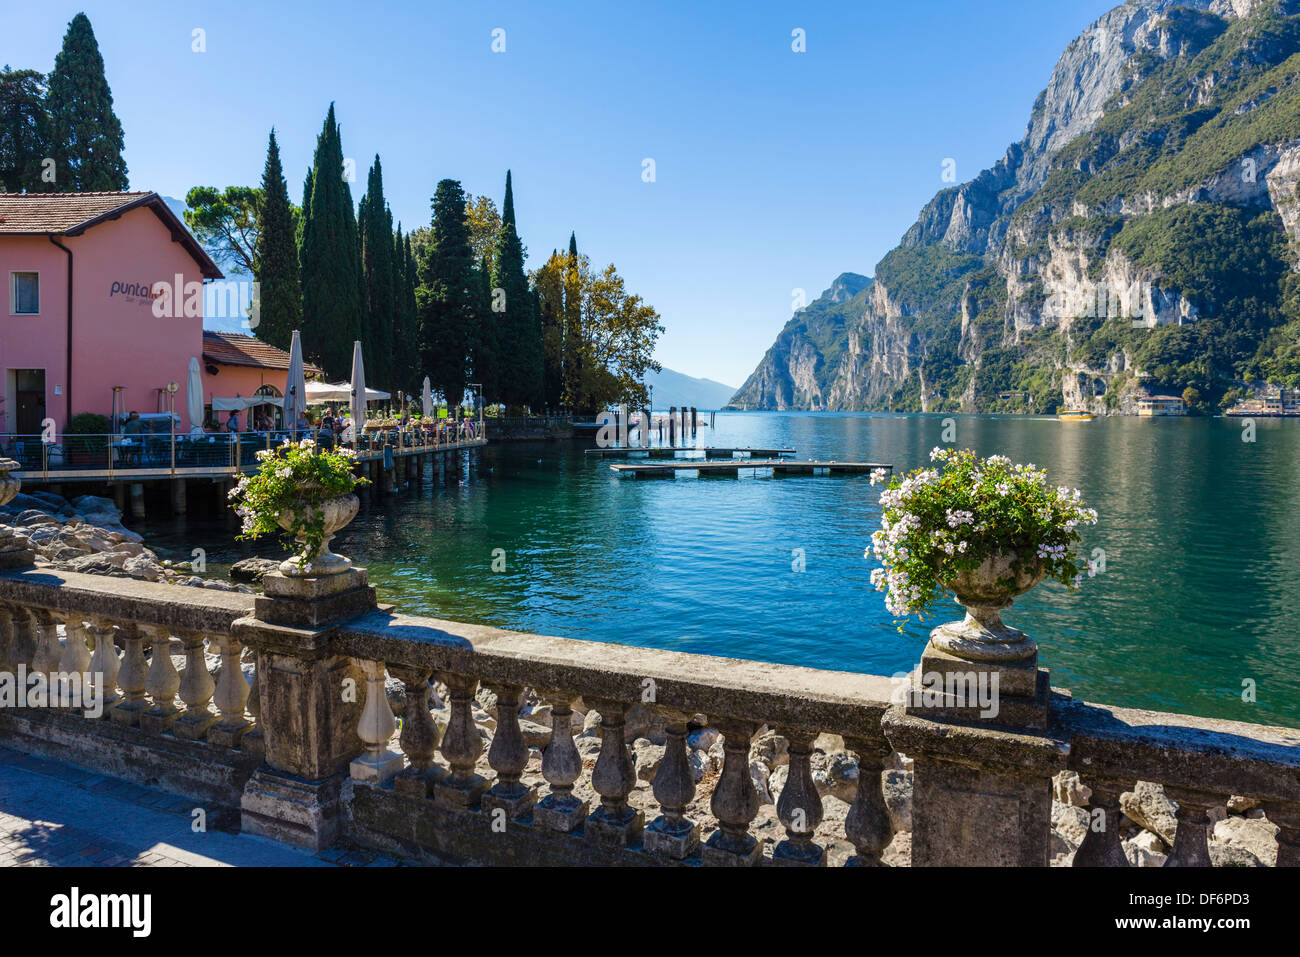 The lakefront at Riva del Garda, Lake Garda, Trentino-Alto Adige, Italy - Stock Image